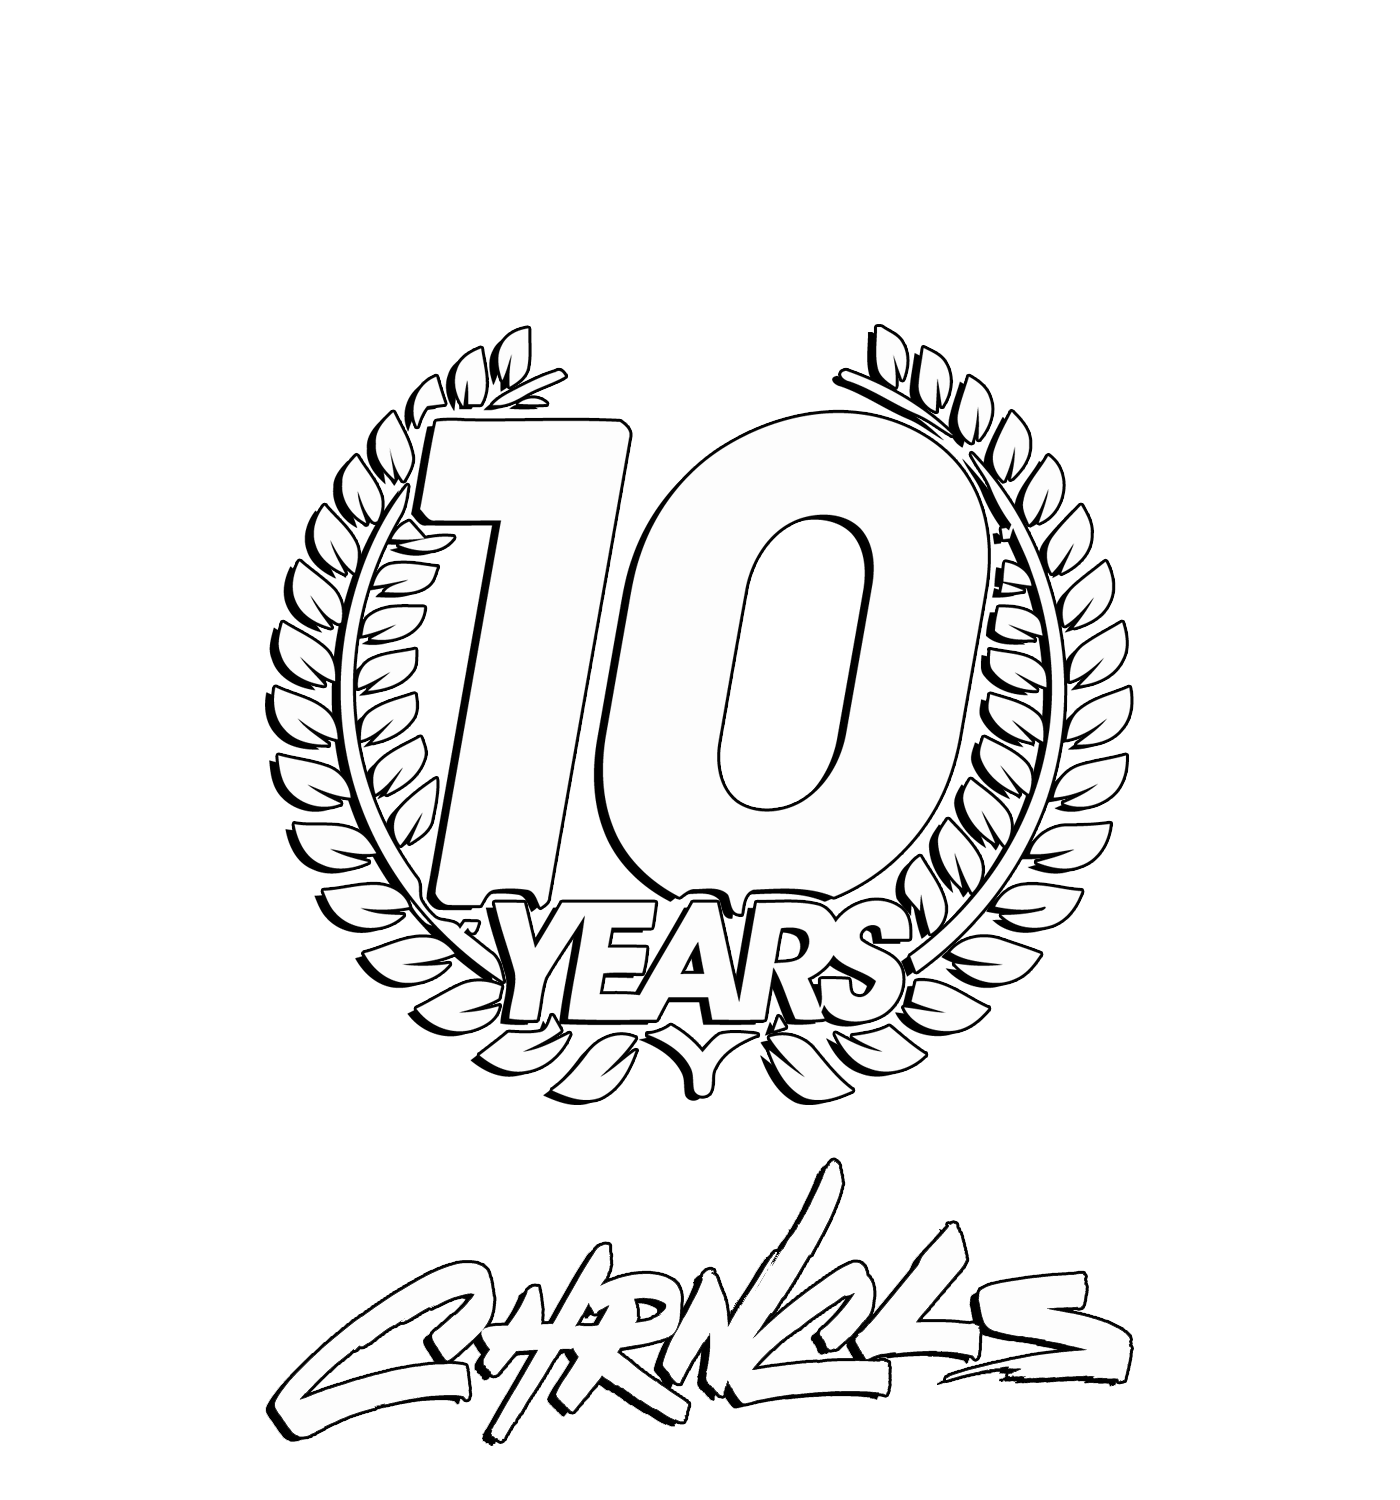 the chronicles no equal since 2008 stickydiljoe 2JZ Turbo the chronicles no equal since 2008 stickydiljoe passion first the rest will follow